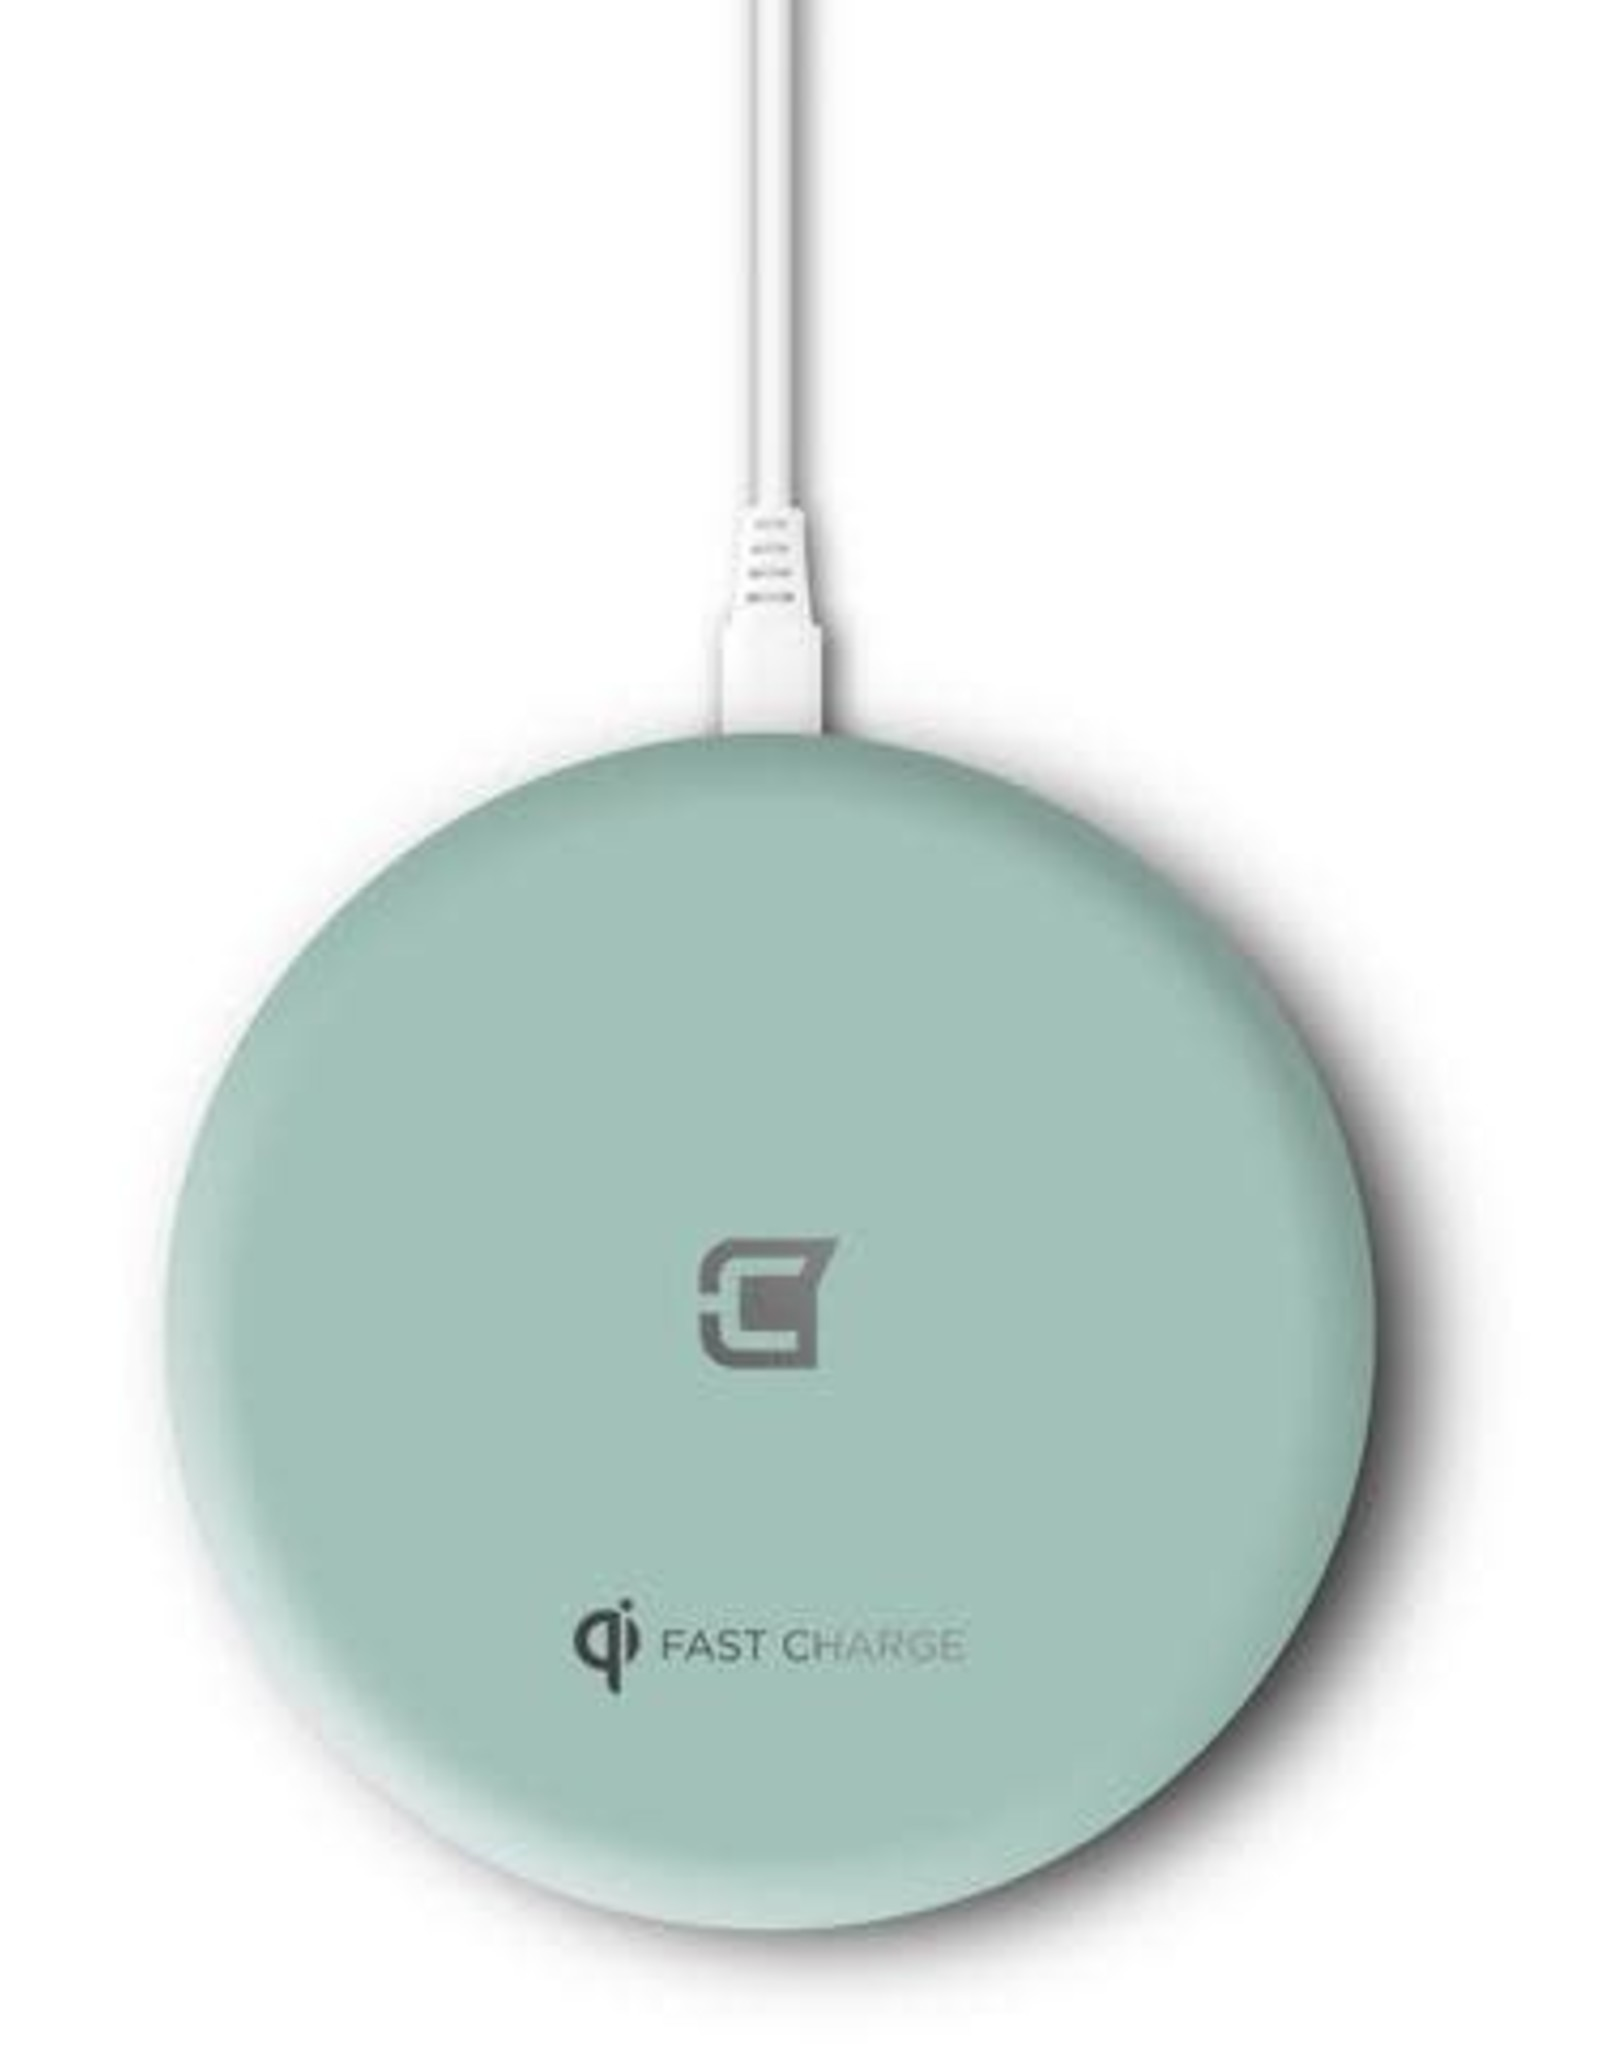 Caseco Caseco Nitro II 10W Fast Wireless Charger For Android & IOS Sage C0710-10